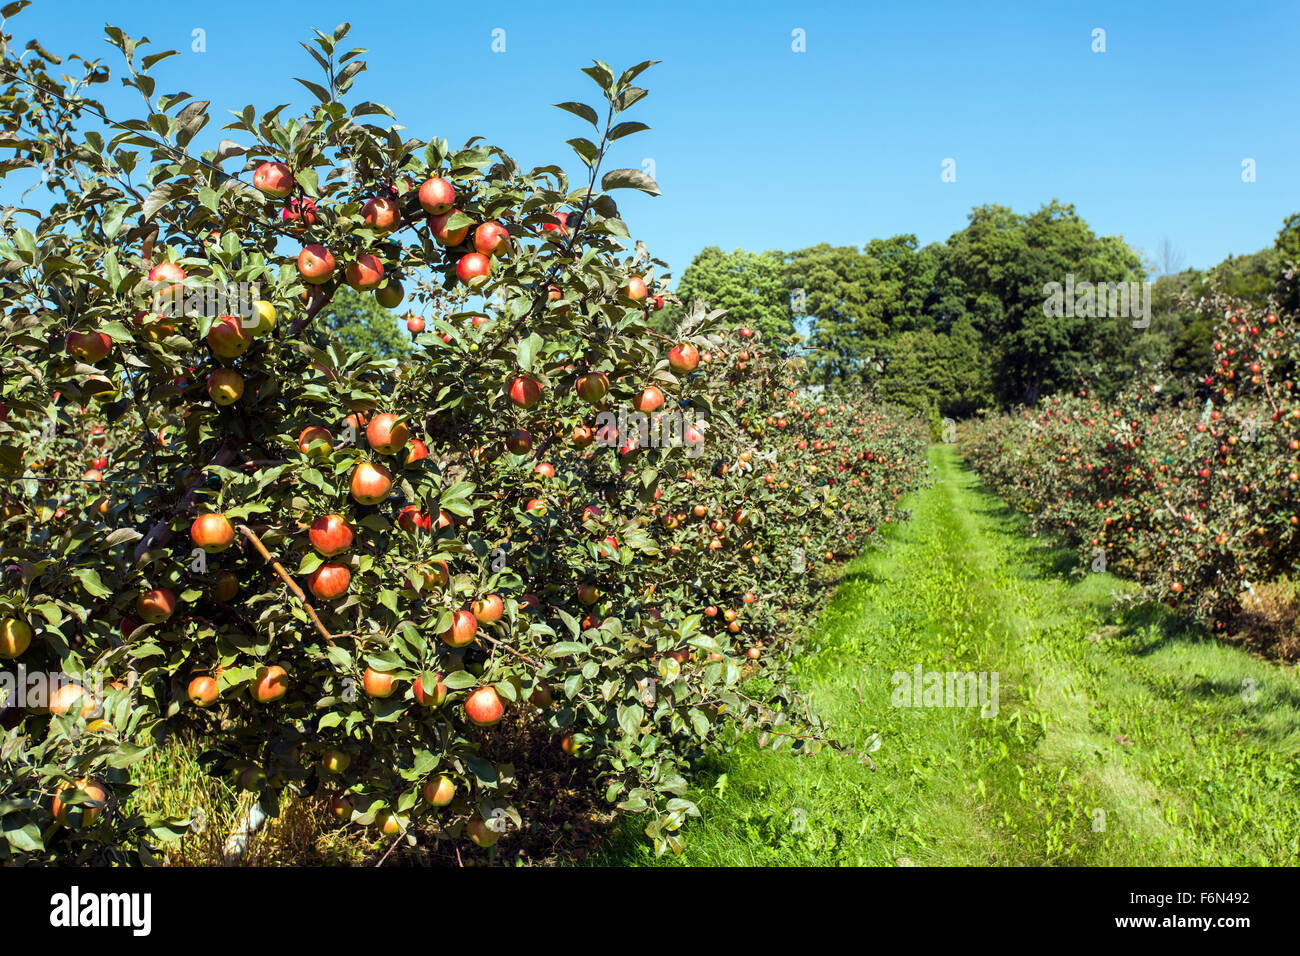 USA,Wisconsin,Door County,  apple orchard with ripe fruit - Stock Image